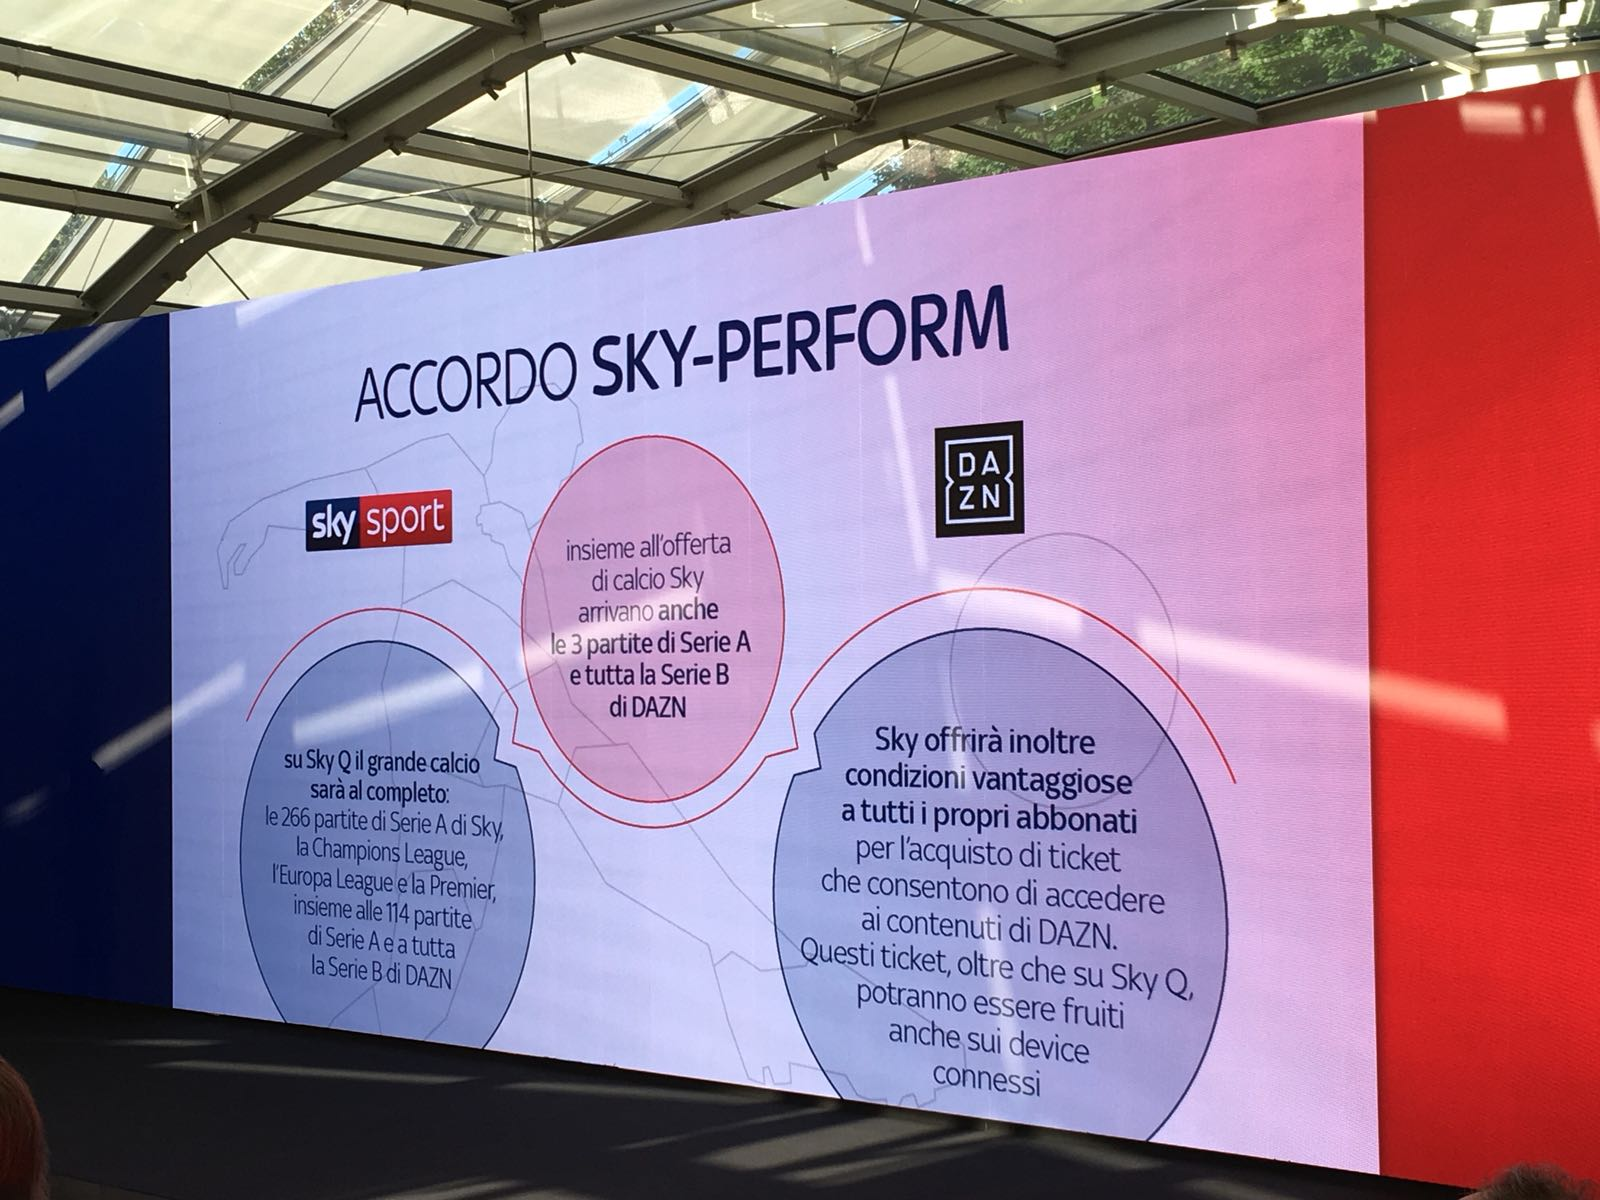 accordo-dazn-perform-sky